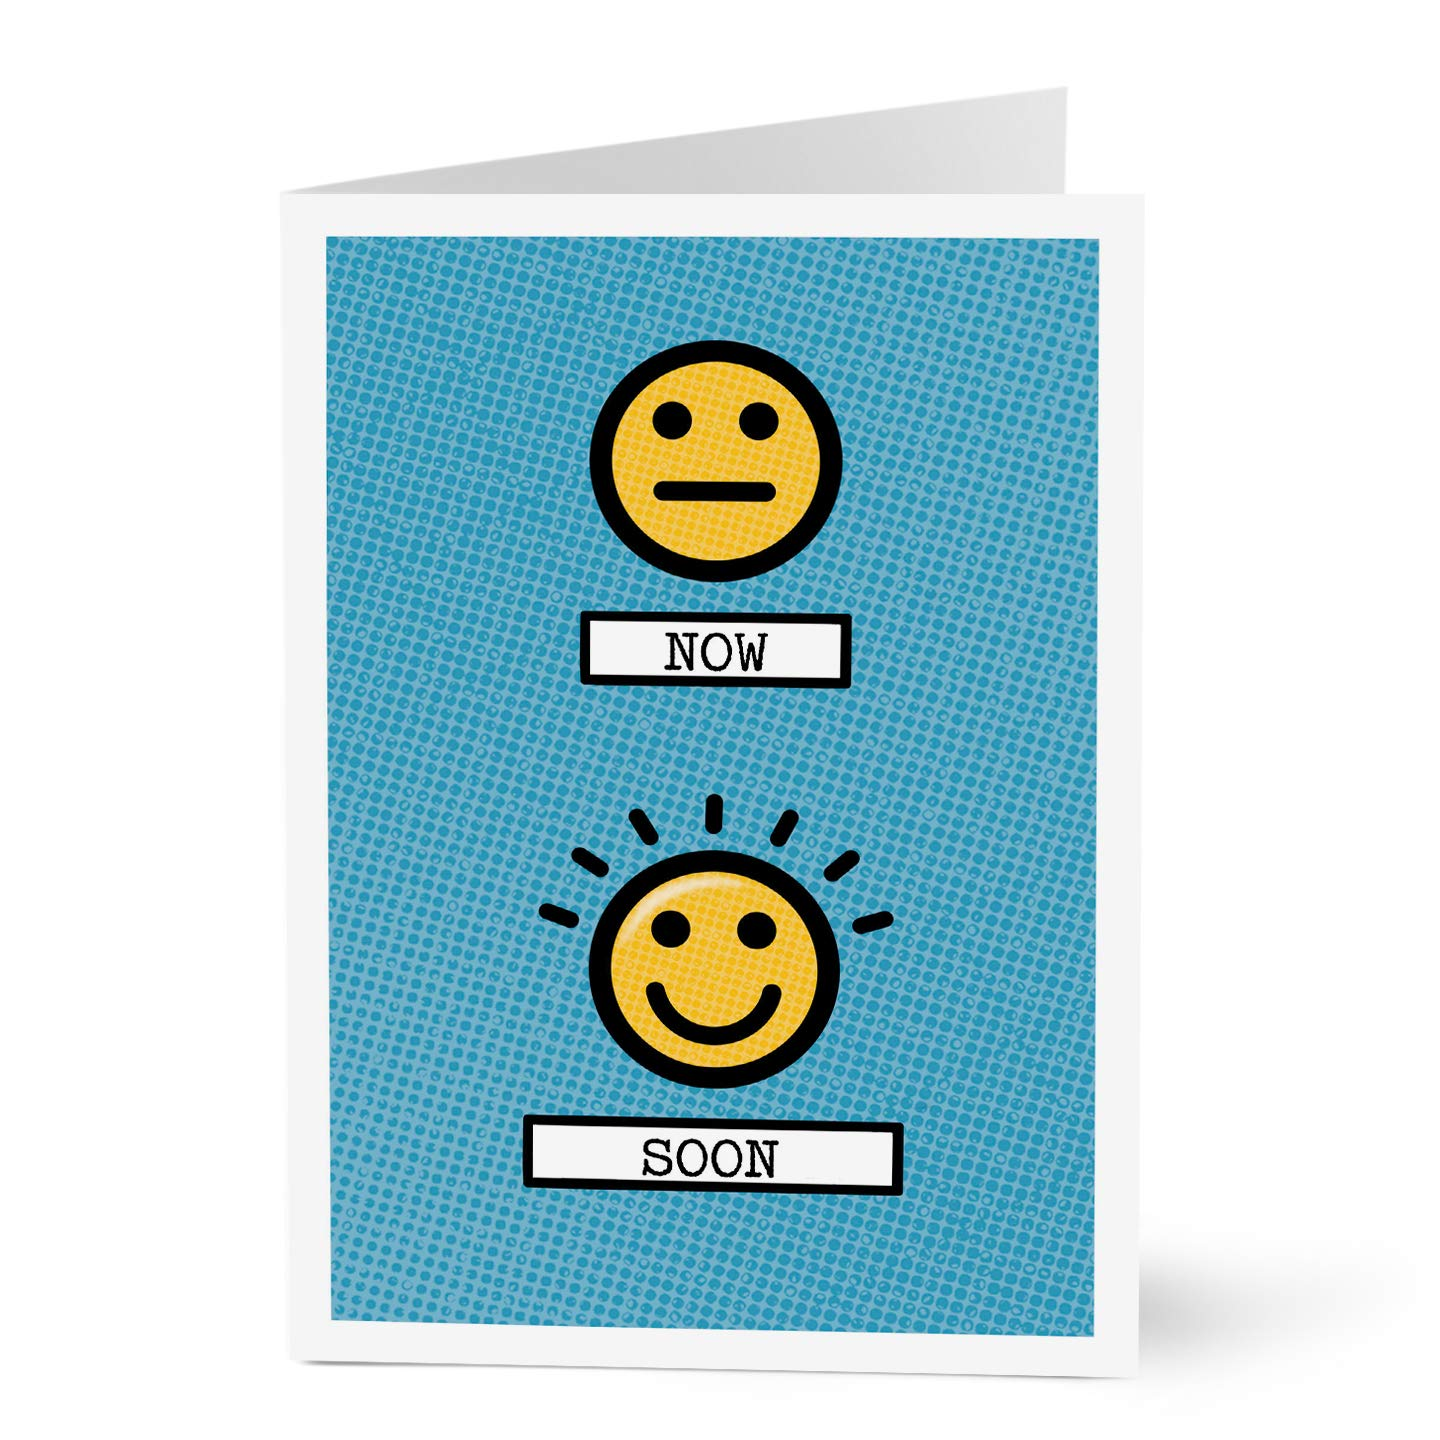 Hallmark Encouragement Card for Employees and Customers (Emoji Encouragement) (Pack of 25 Greeting Cards)